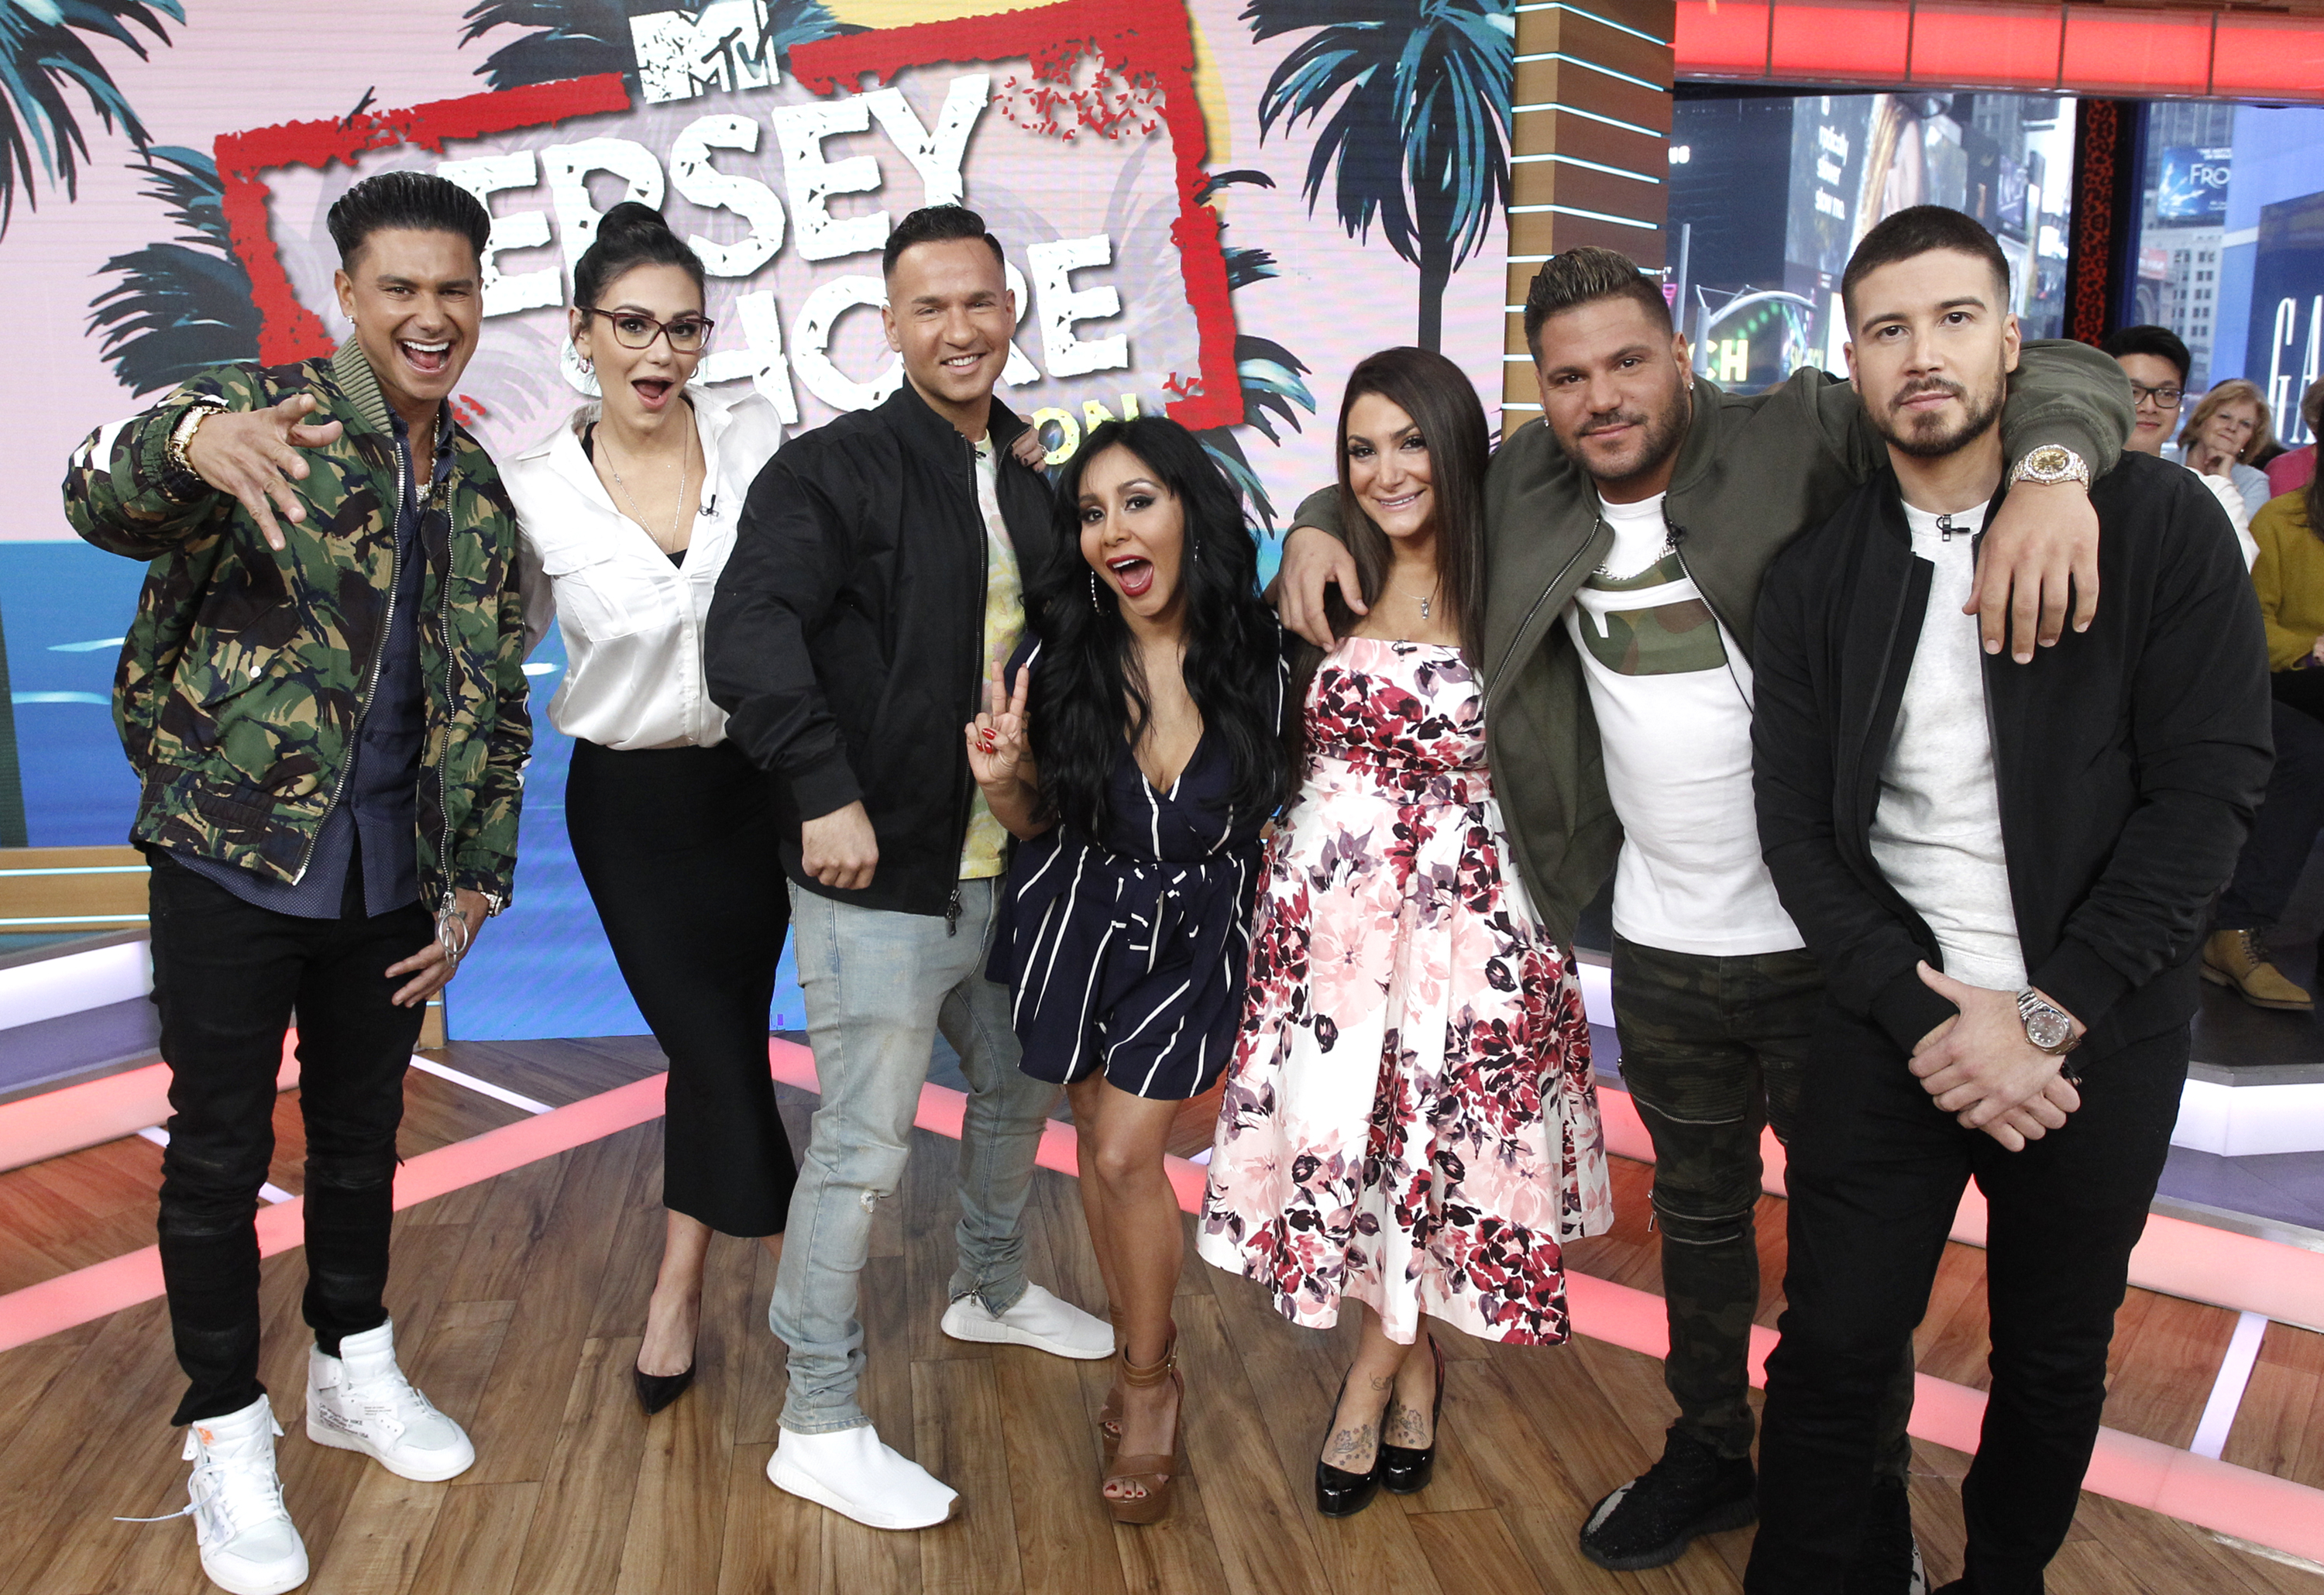 Angelina Pivarnick Nude Pics who is the richest on jersey shore? net worths, salaries